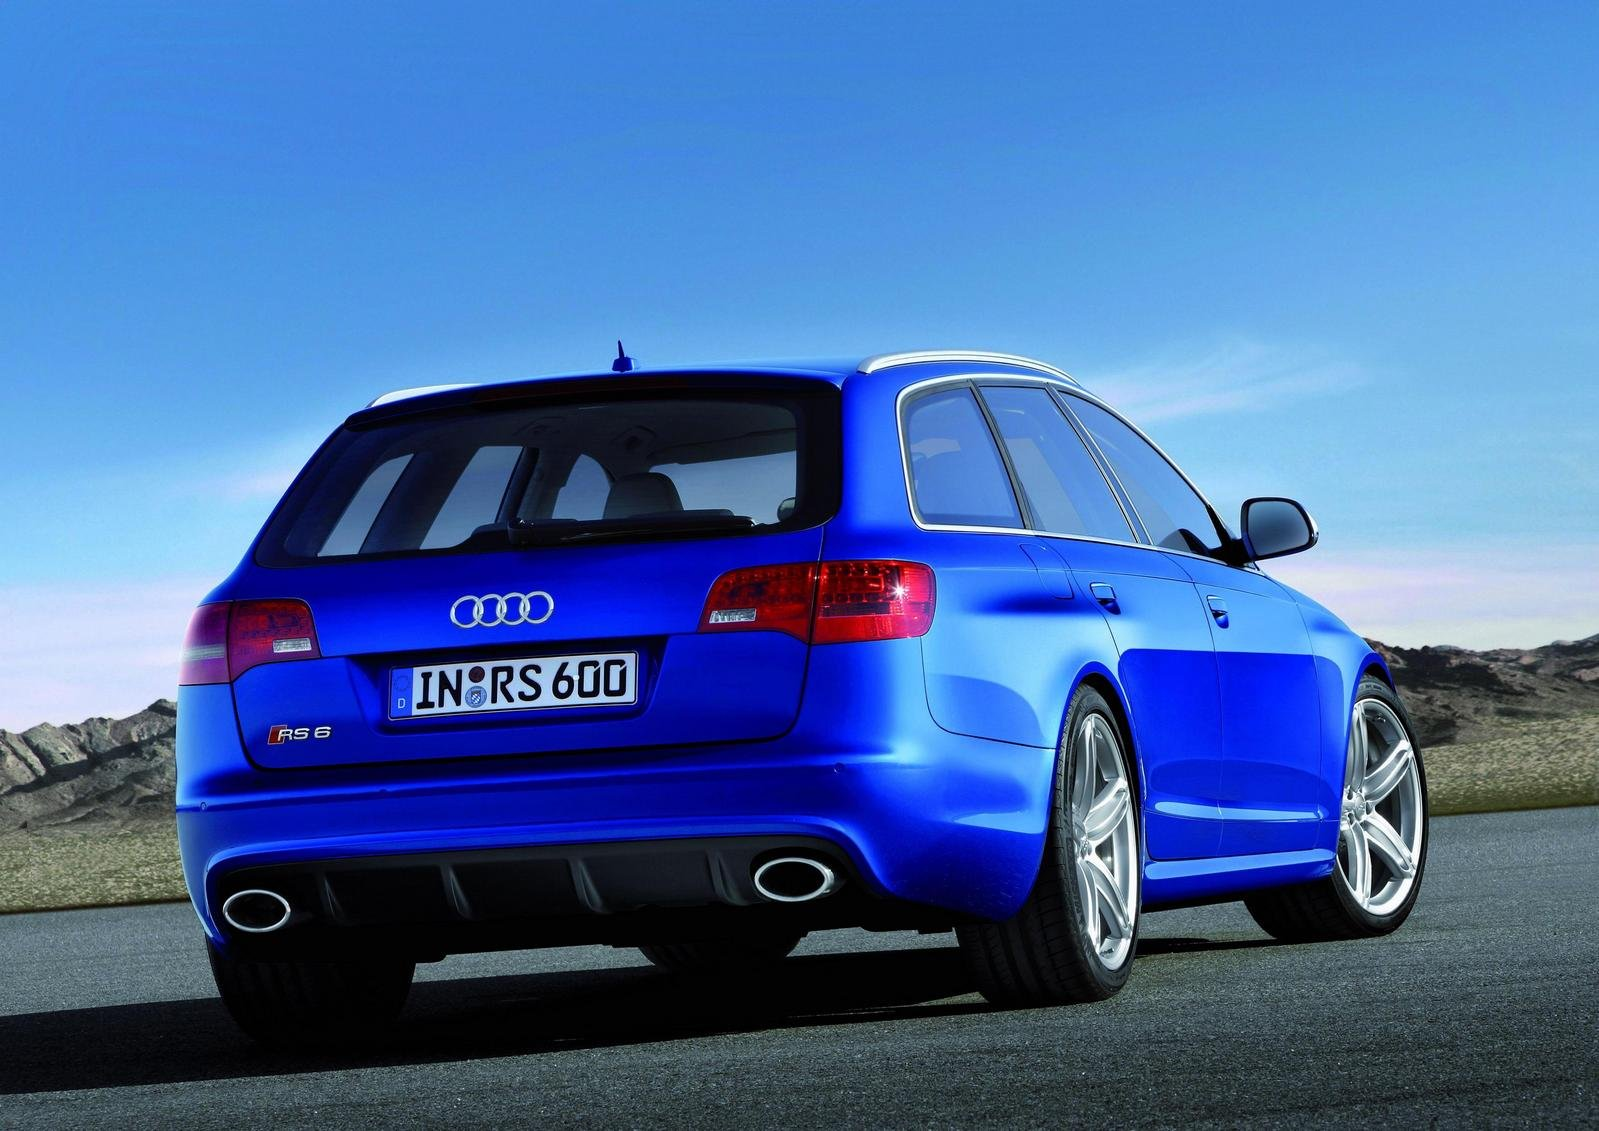 2008 audi rs6 avant picture 196594 car review top speed. Black Bedroom Furniture Sets. Home Design Ideas